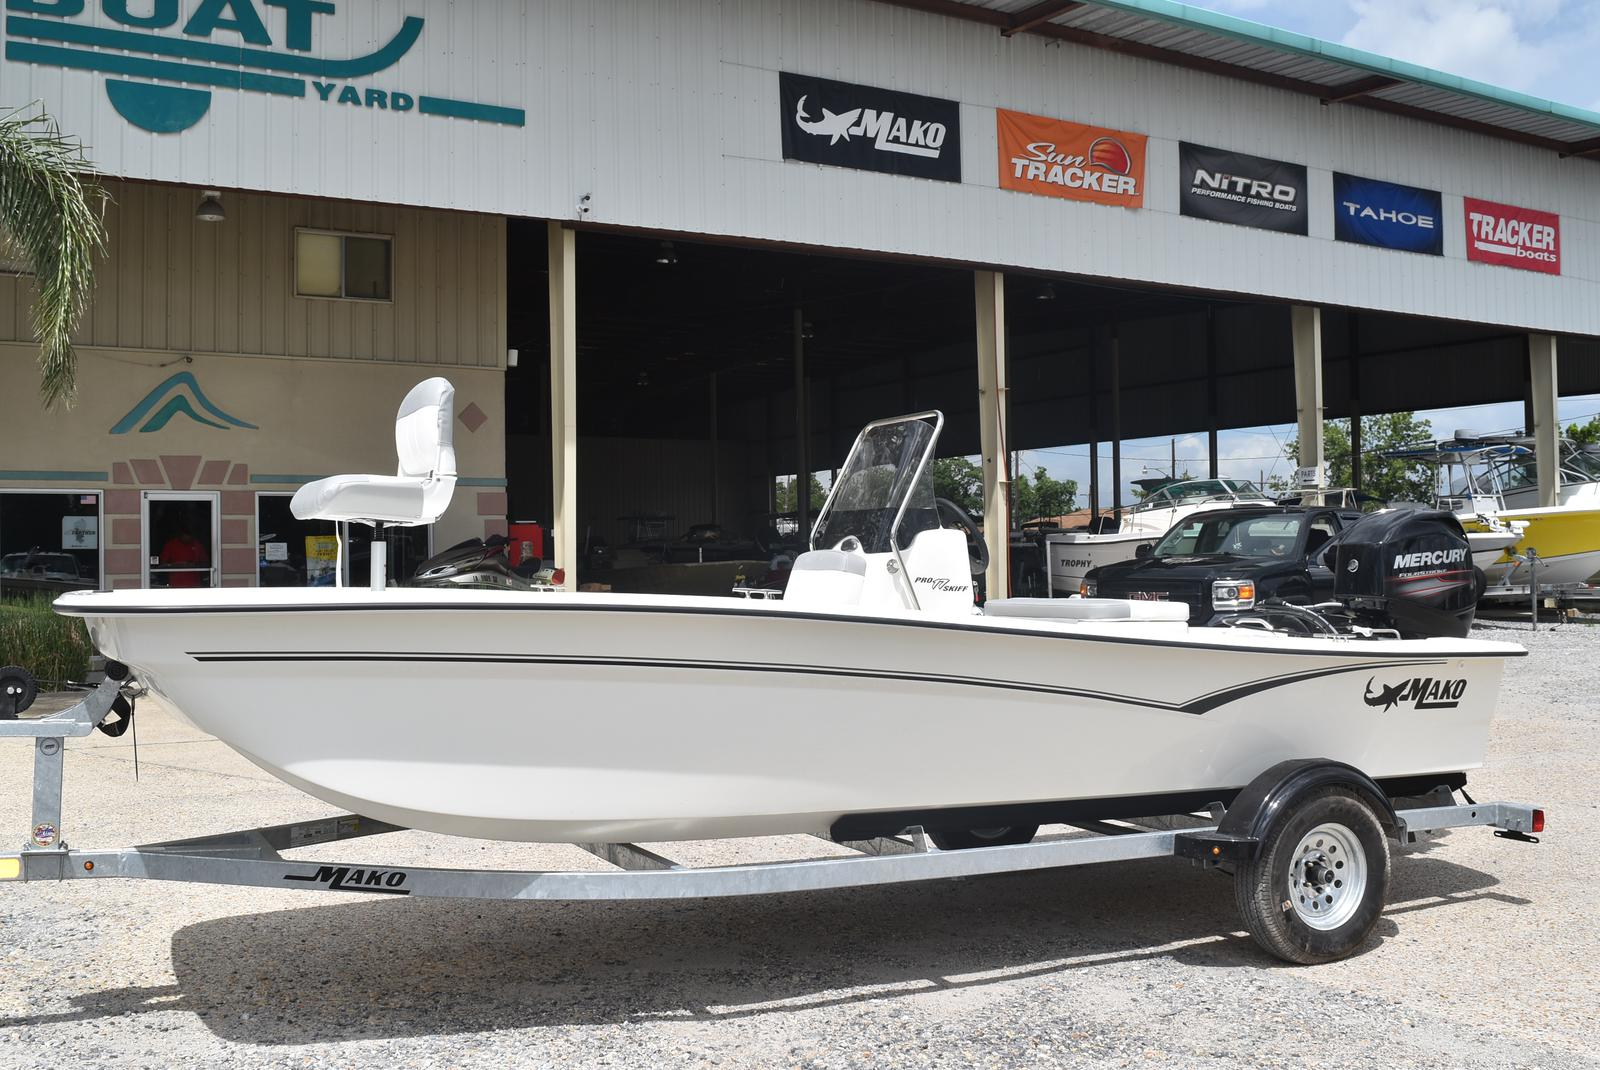 2020 Mako boat for sale, model of the boat is Pro Skiff 17, 75 ELPT & Image # 121 of 702